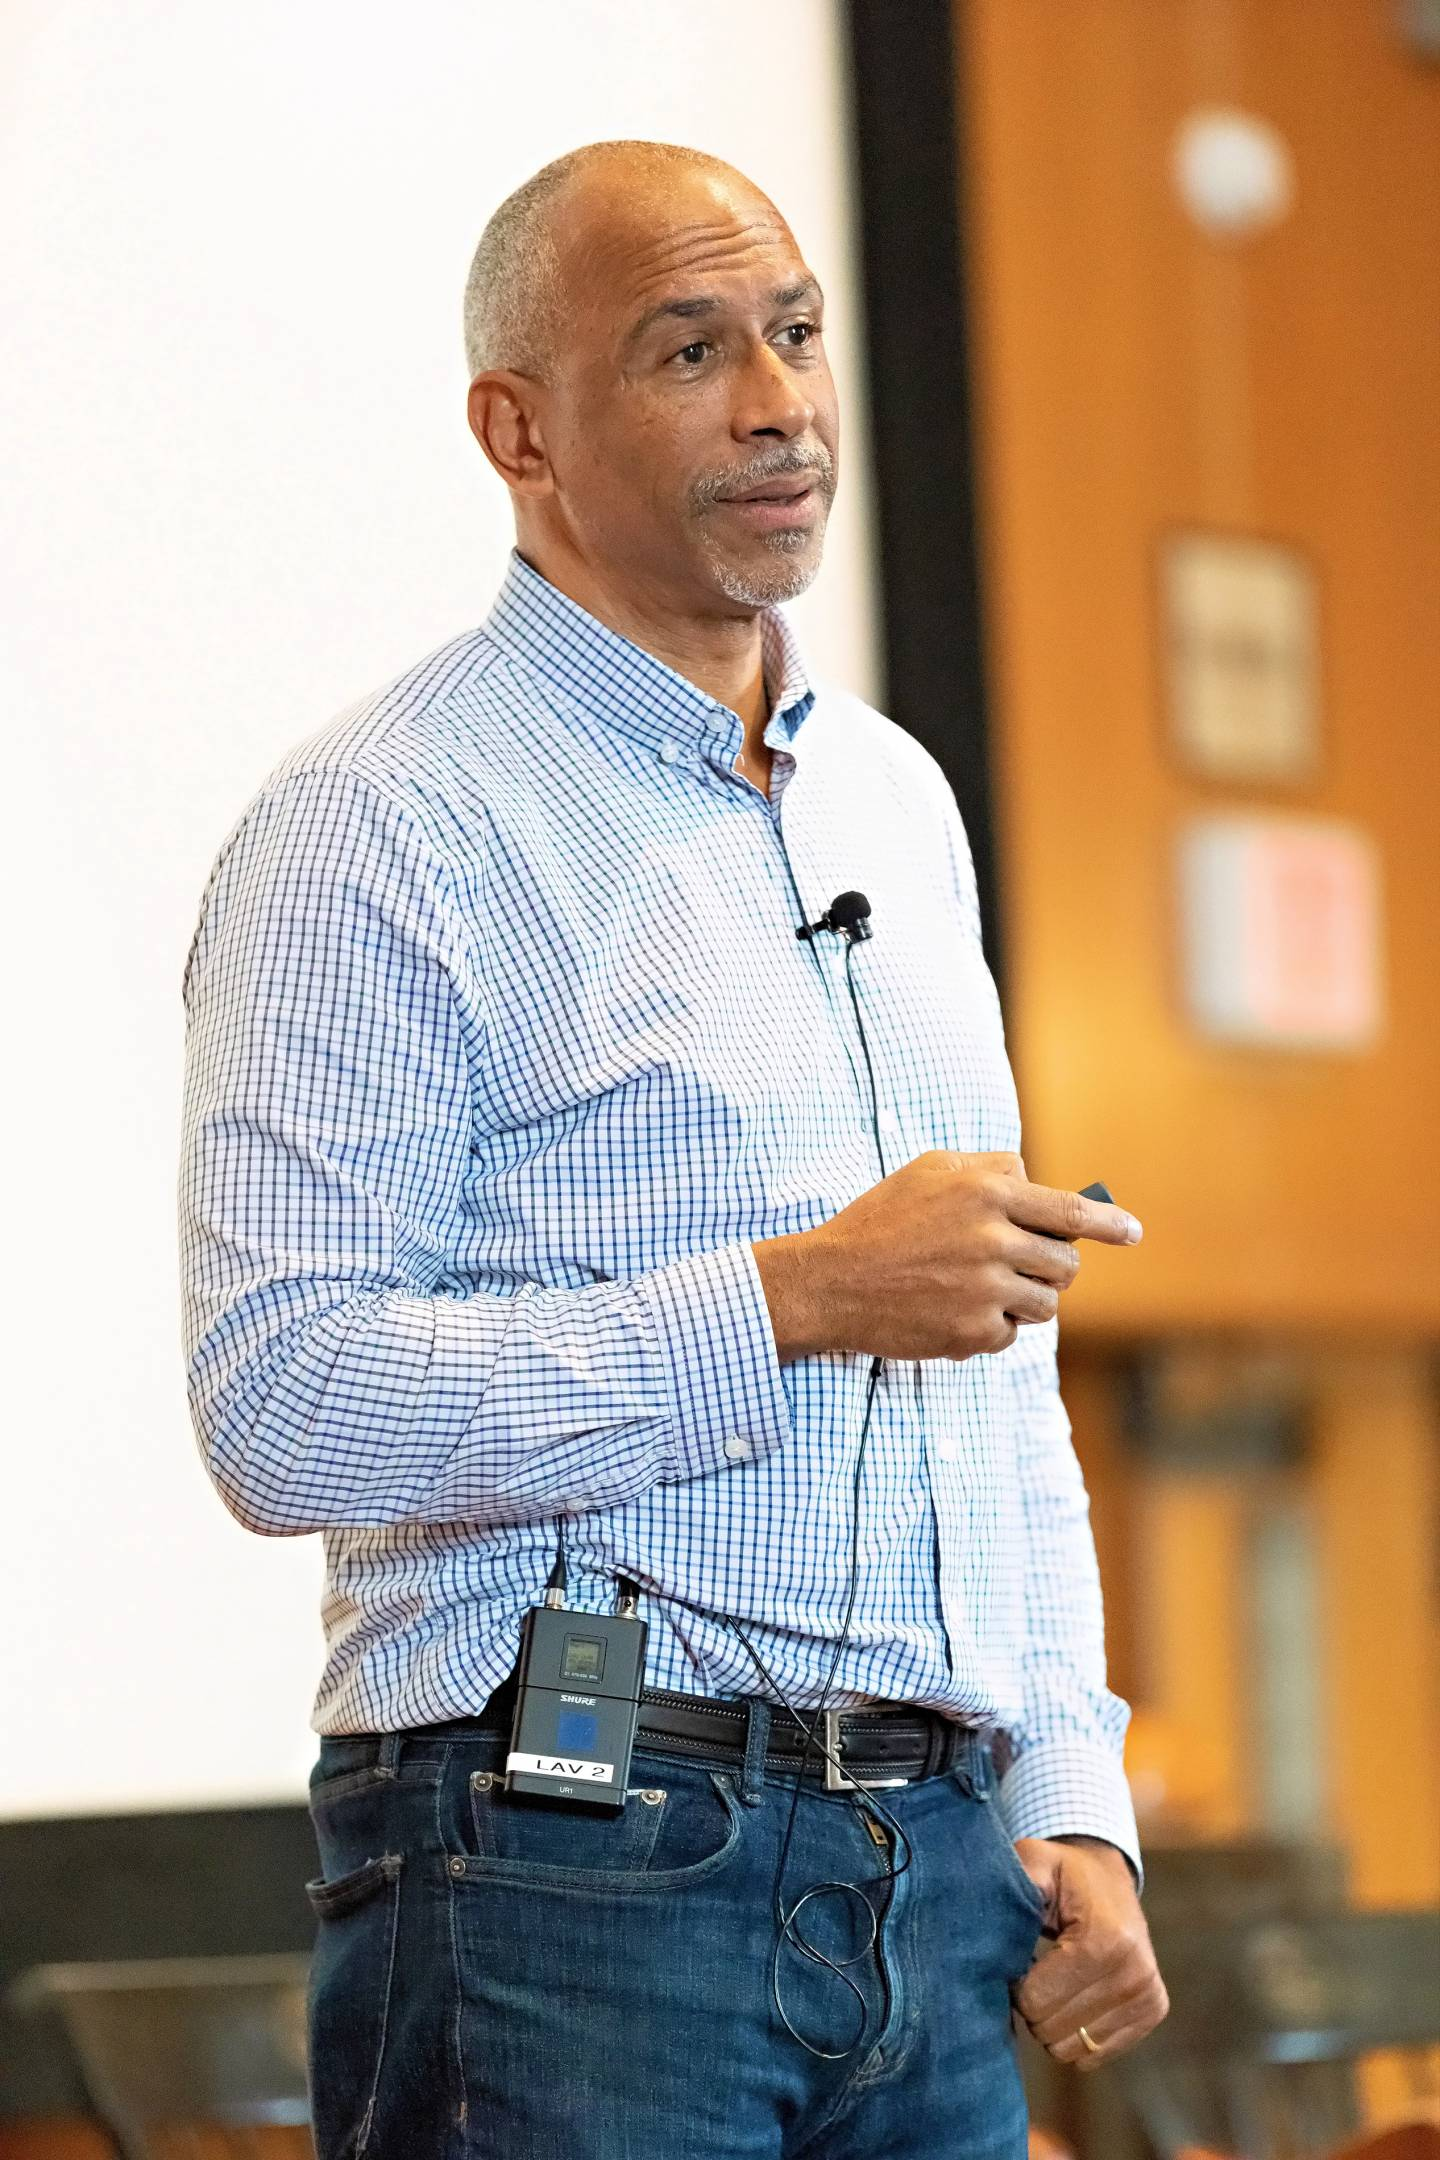 Pedro Noguera speaks to an audience